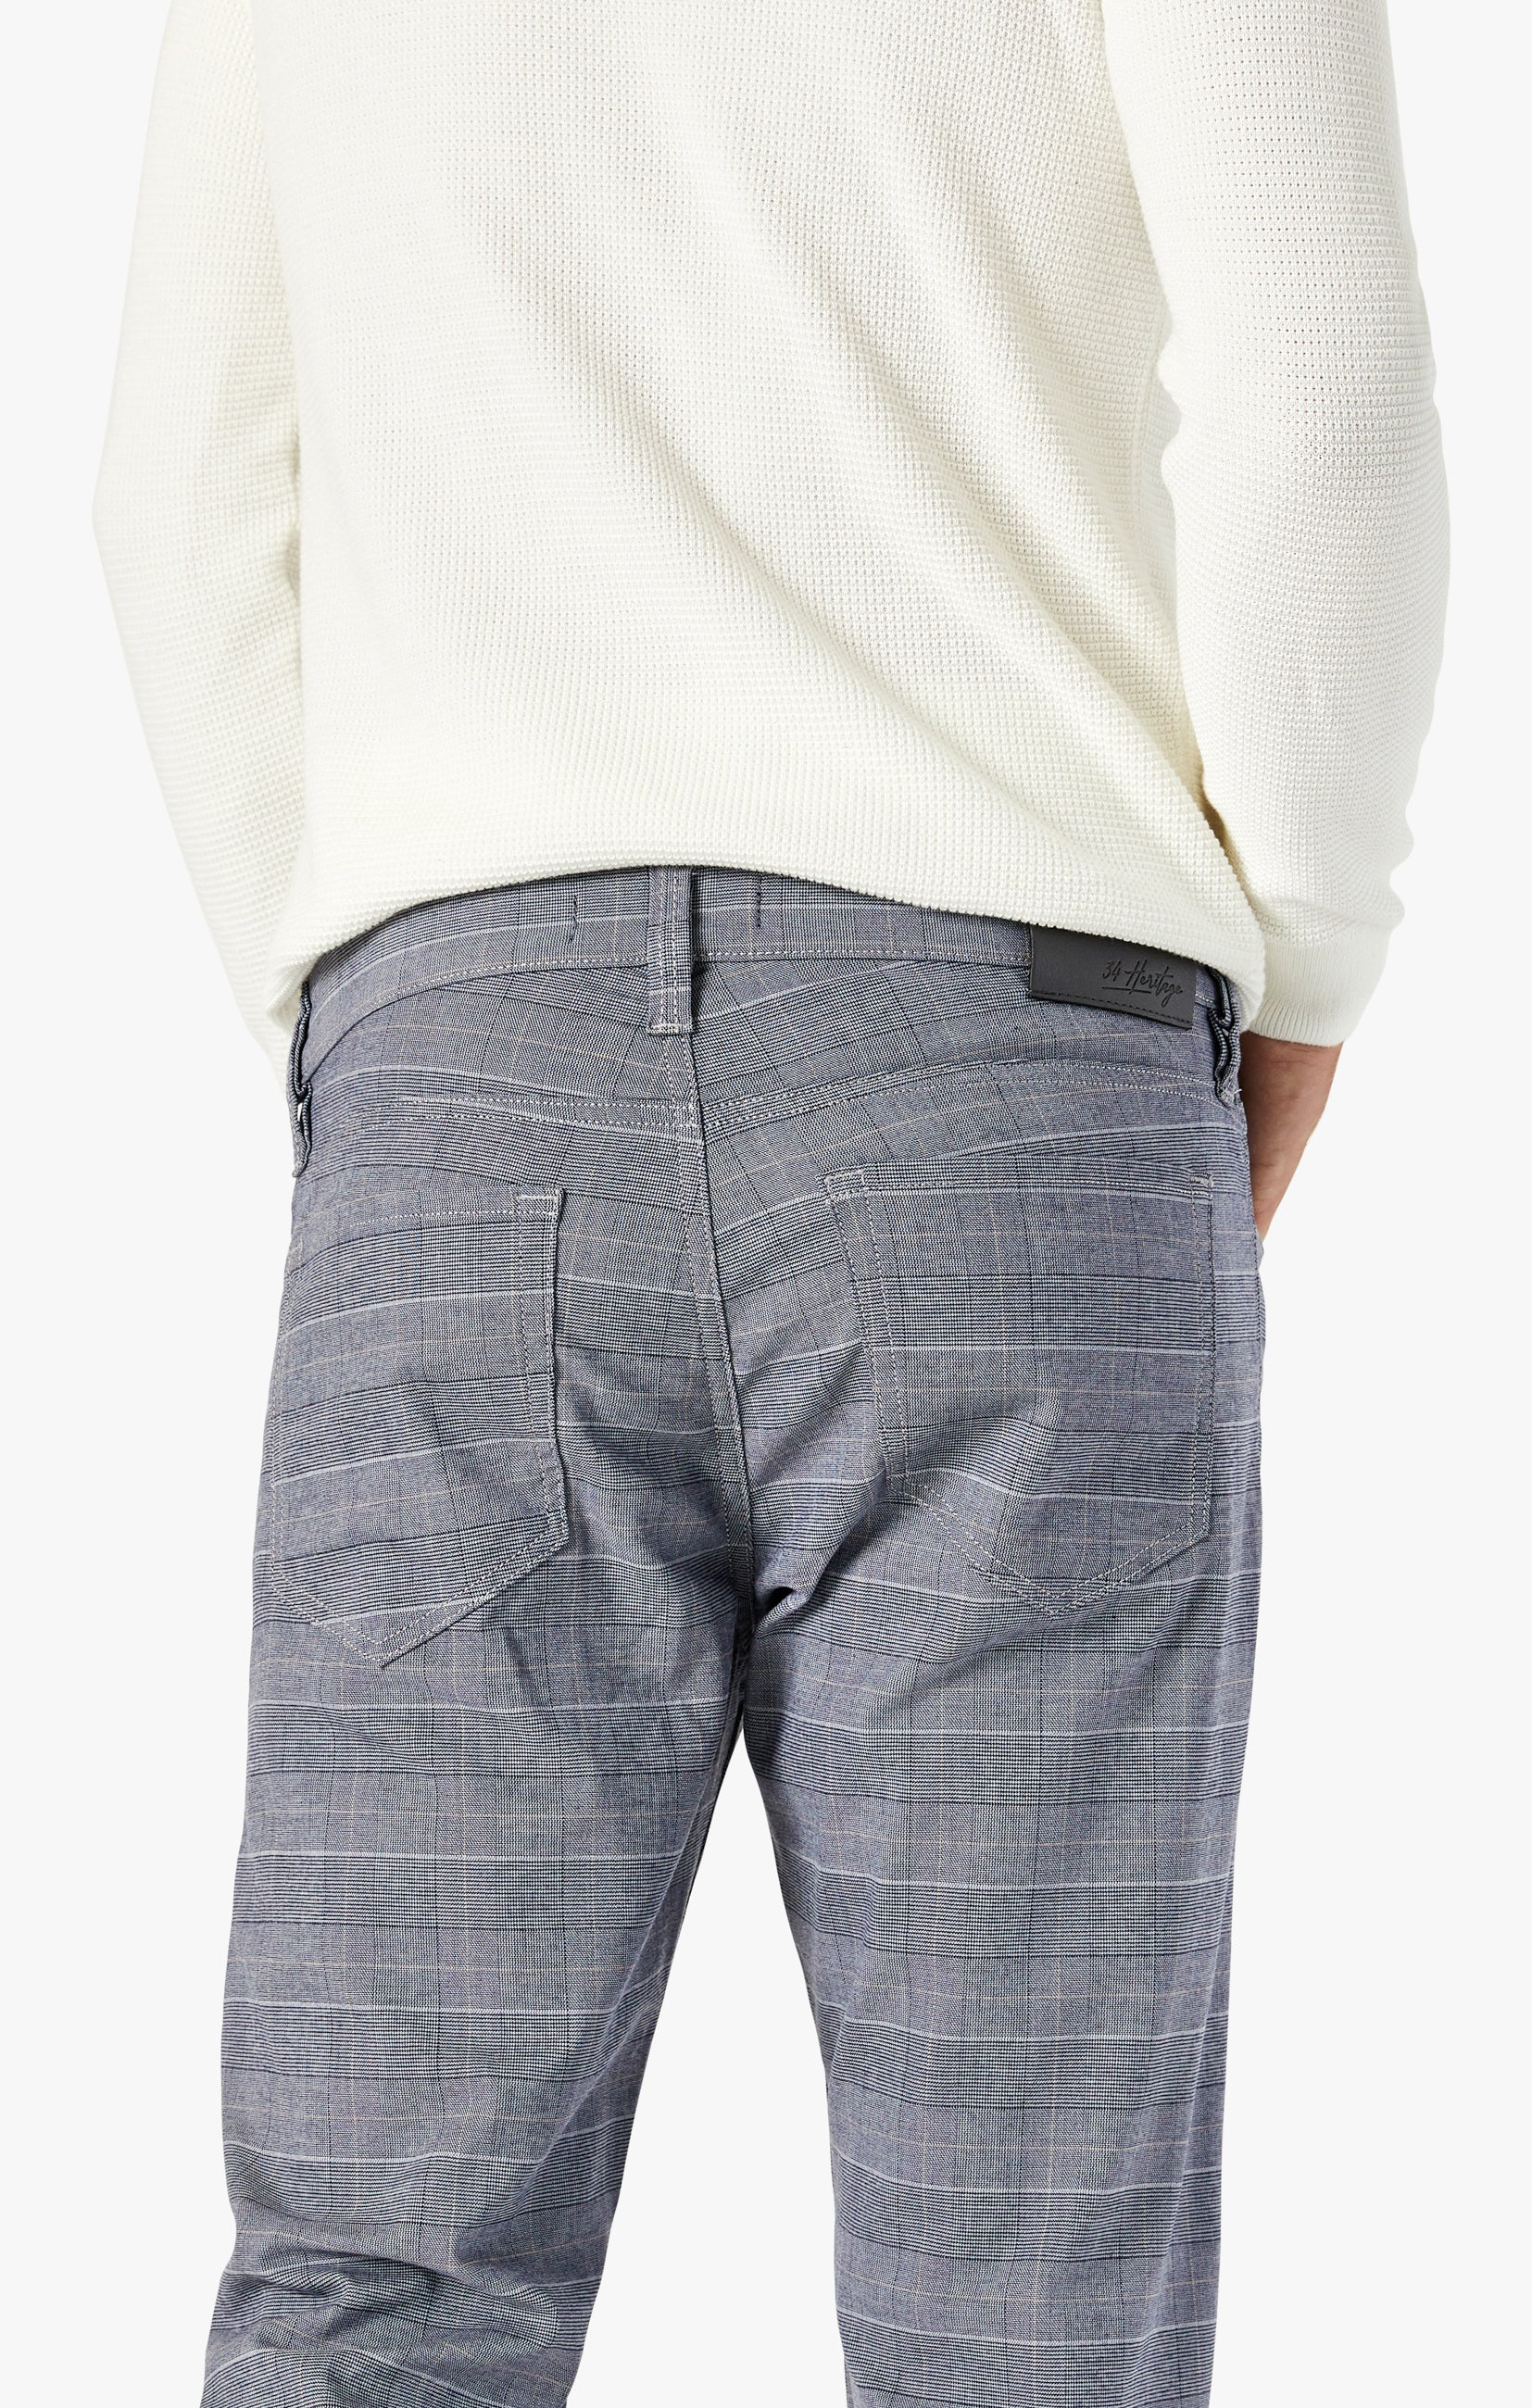 Courage Straight Leg Pants In Anthracite Checked Image 5